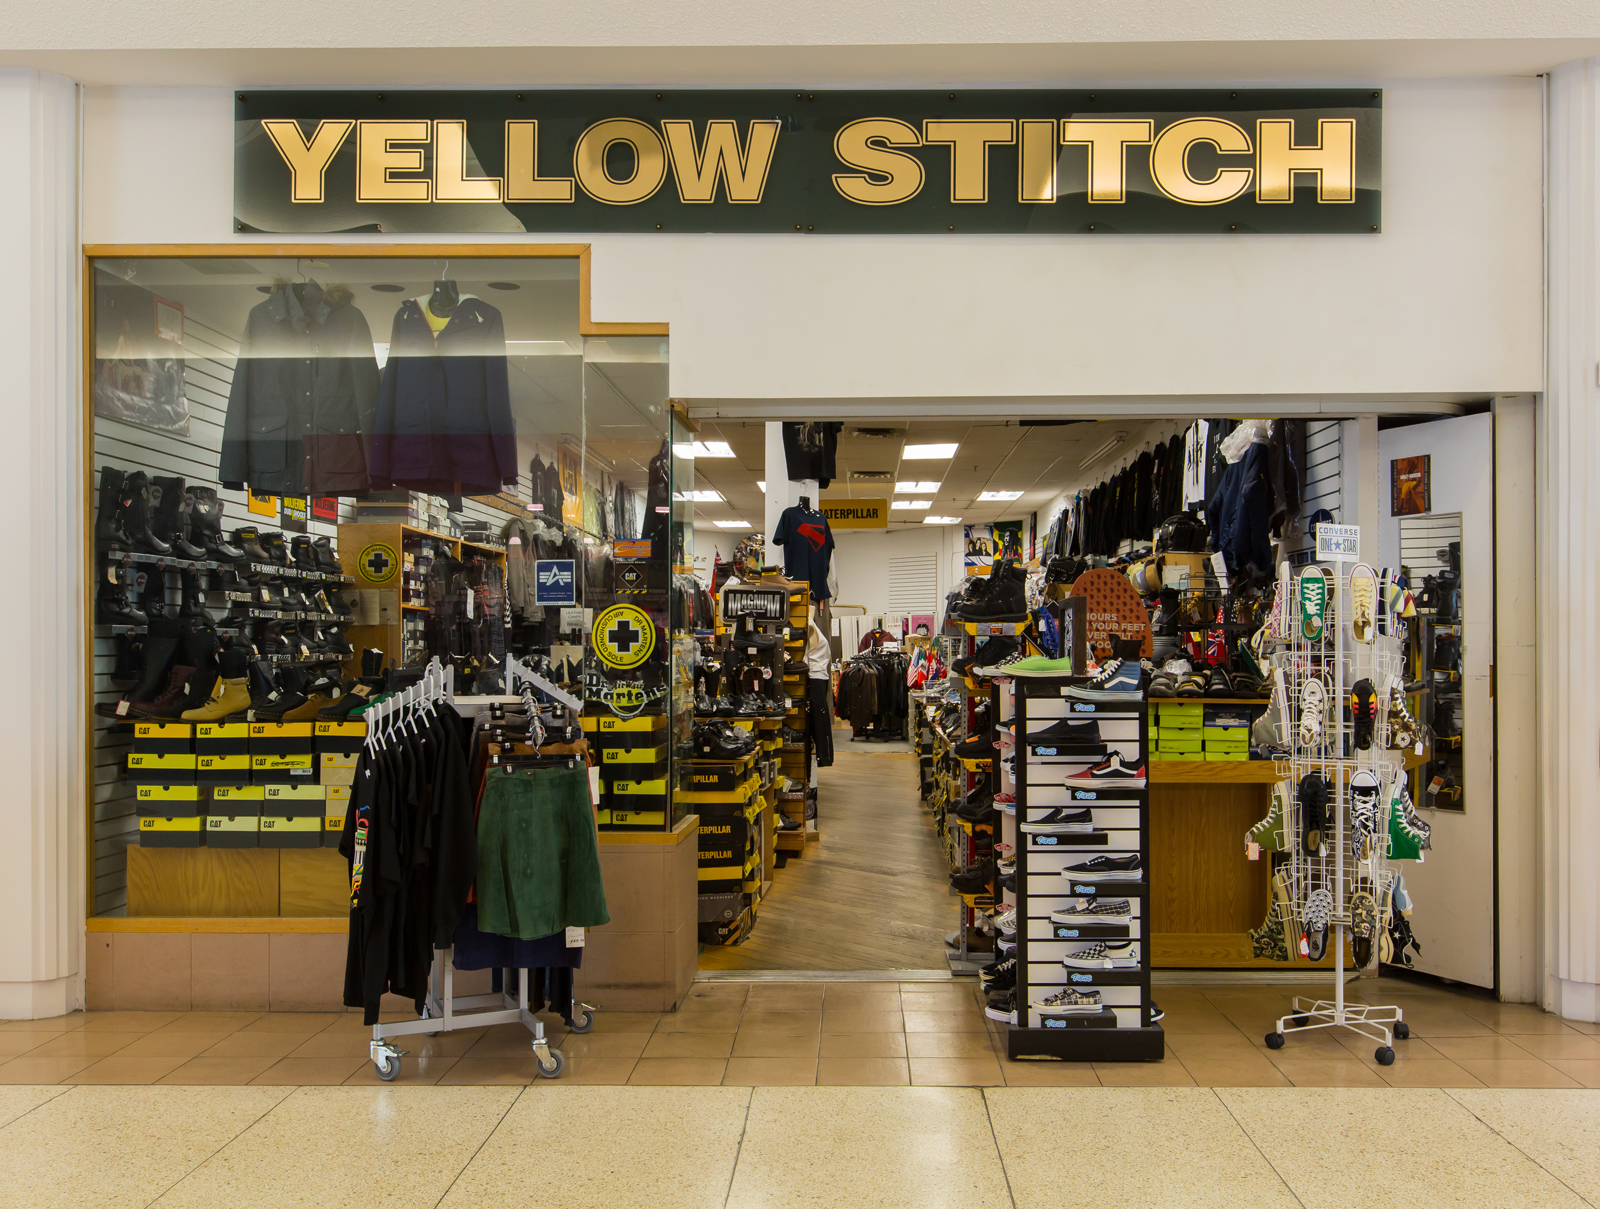 Yellow Stitch